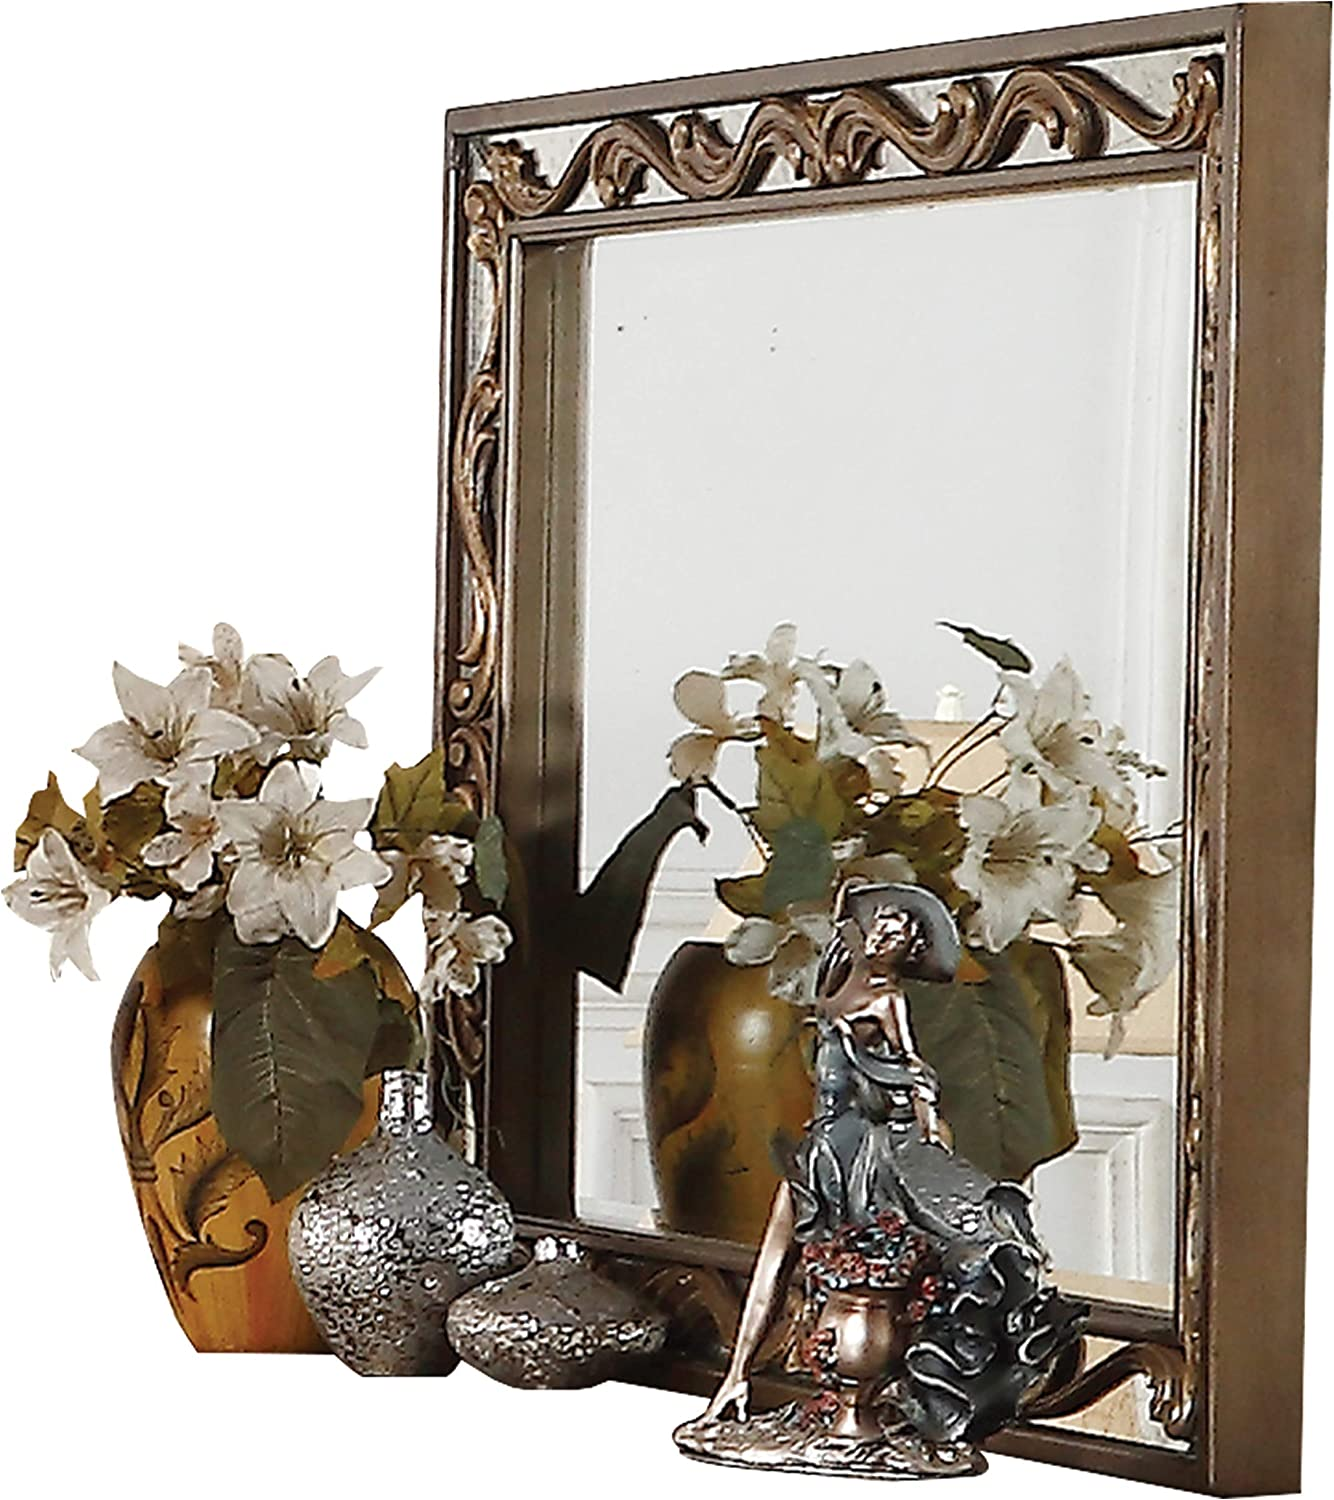 Benjara Rectangular Wooden Mirror with Raised Scrolled Inlays, Gold and Silver